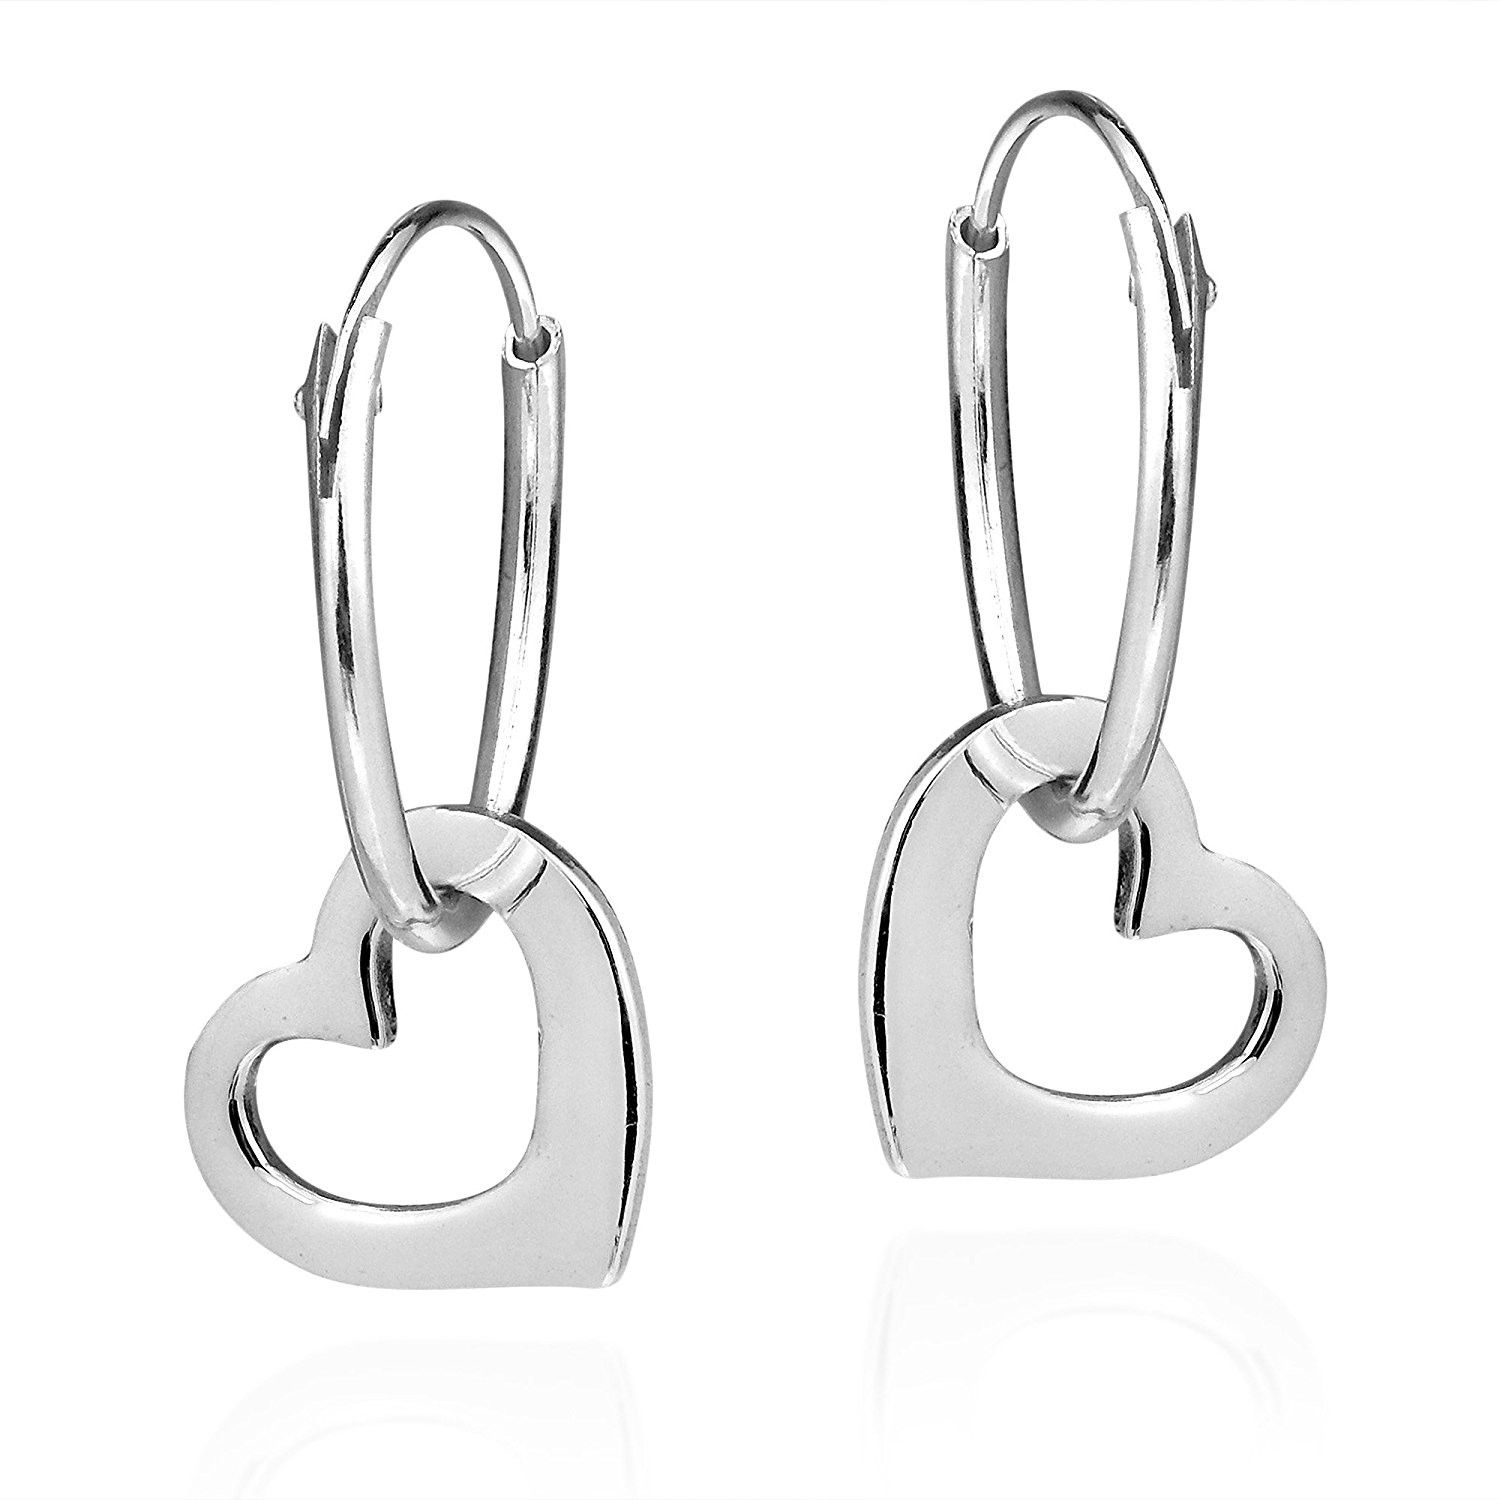 c5ac3d68e8 Open Top Heart Love Hoop Earrings Tubular 925 Sterling Silver Hinged  Notched Post These open heart silver hoop earrings are t…